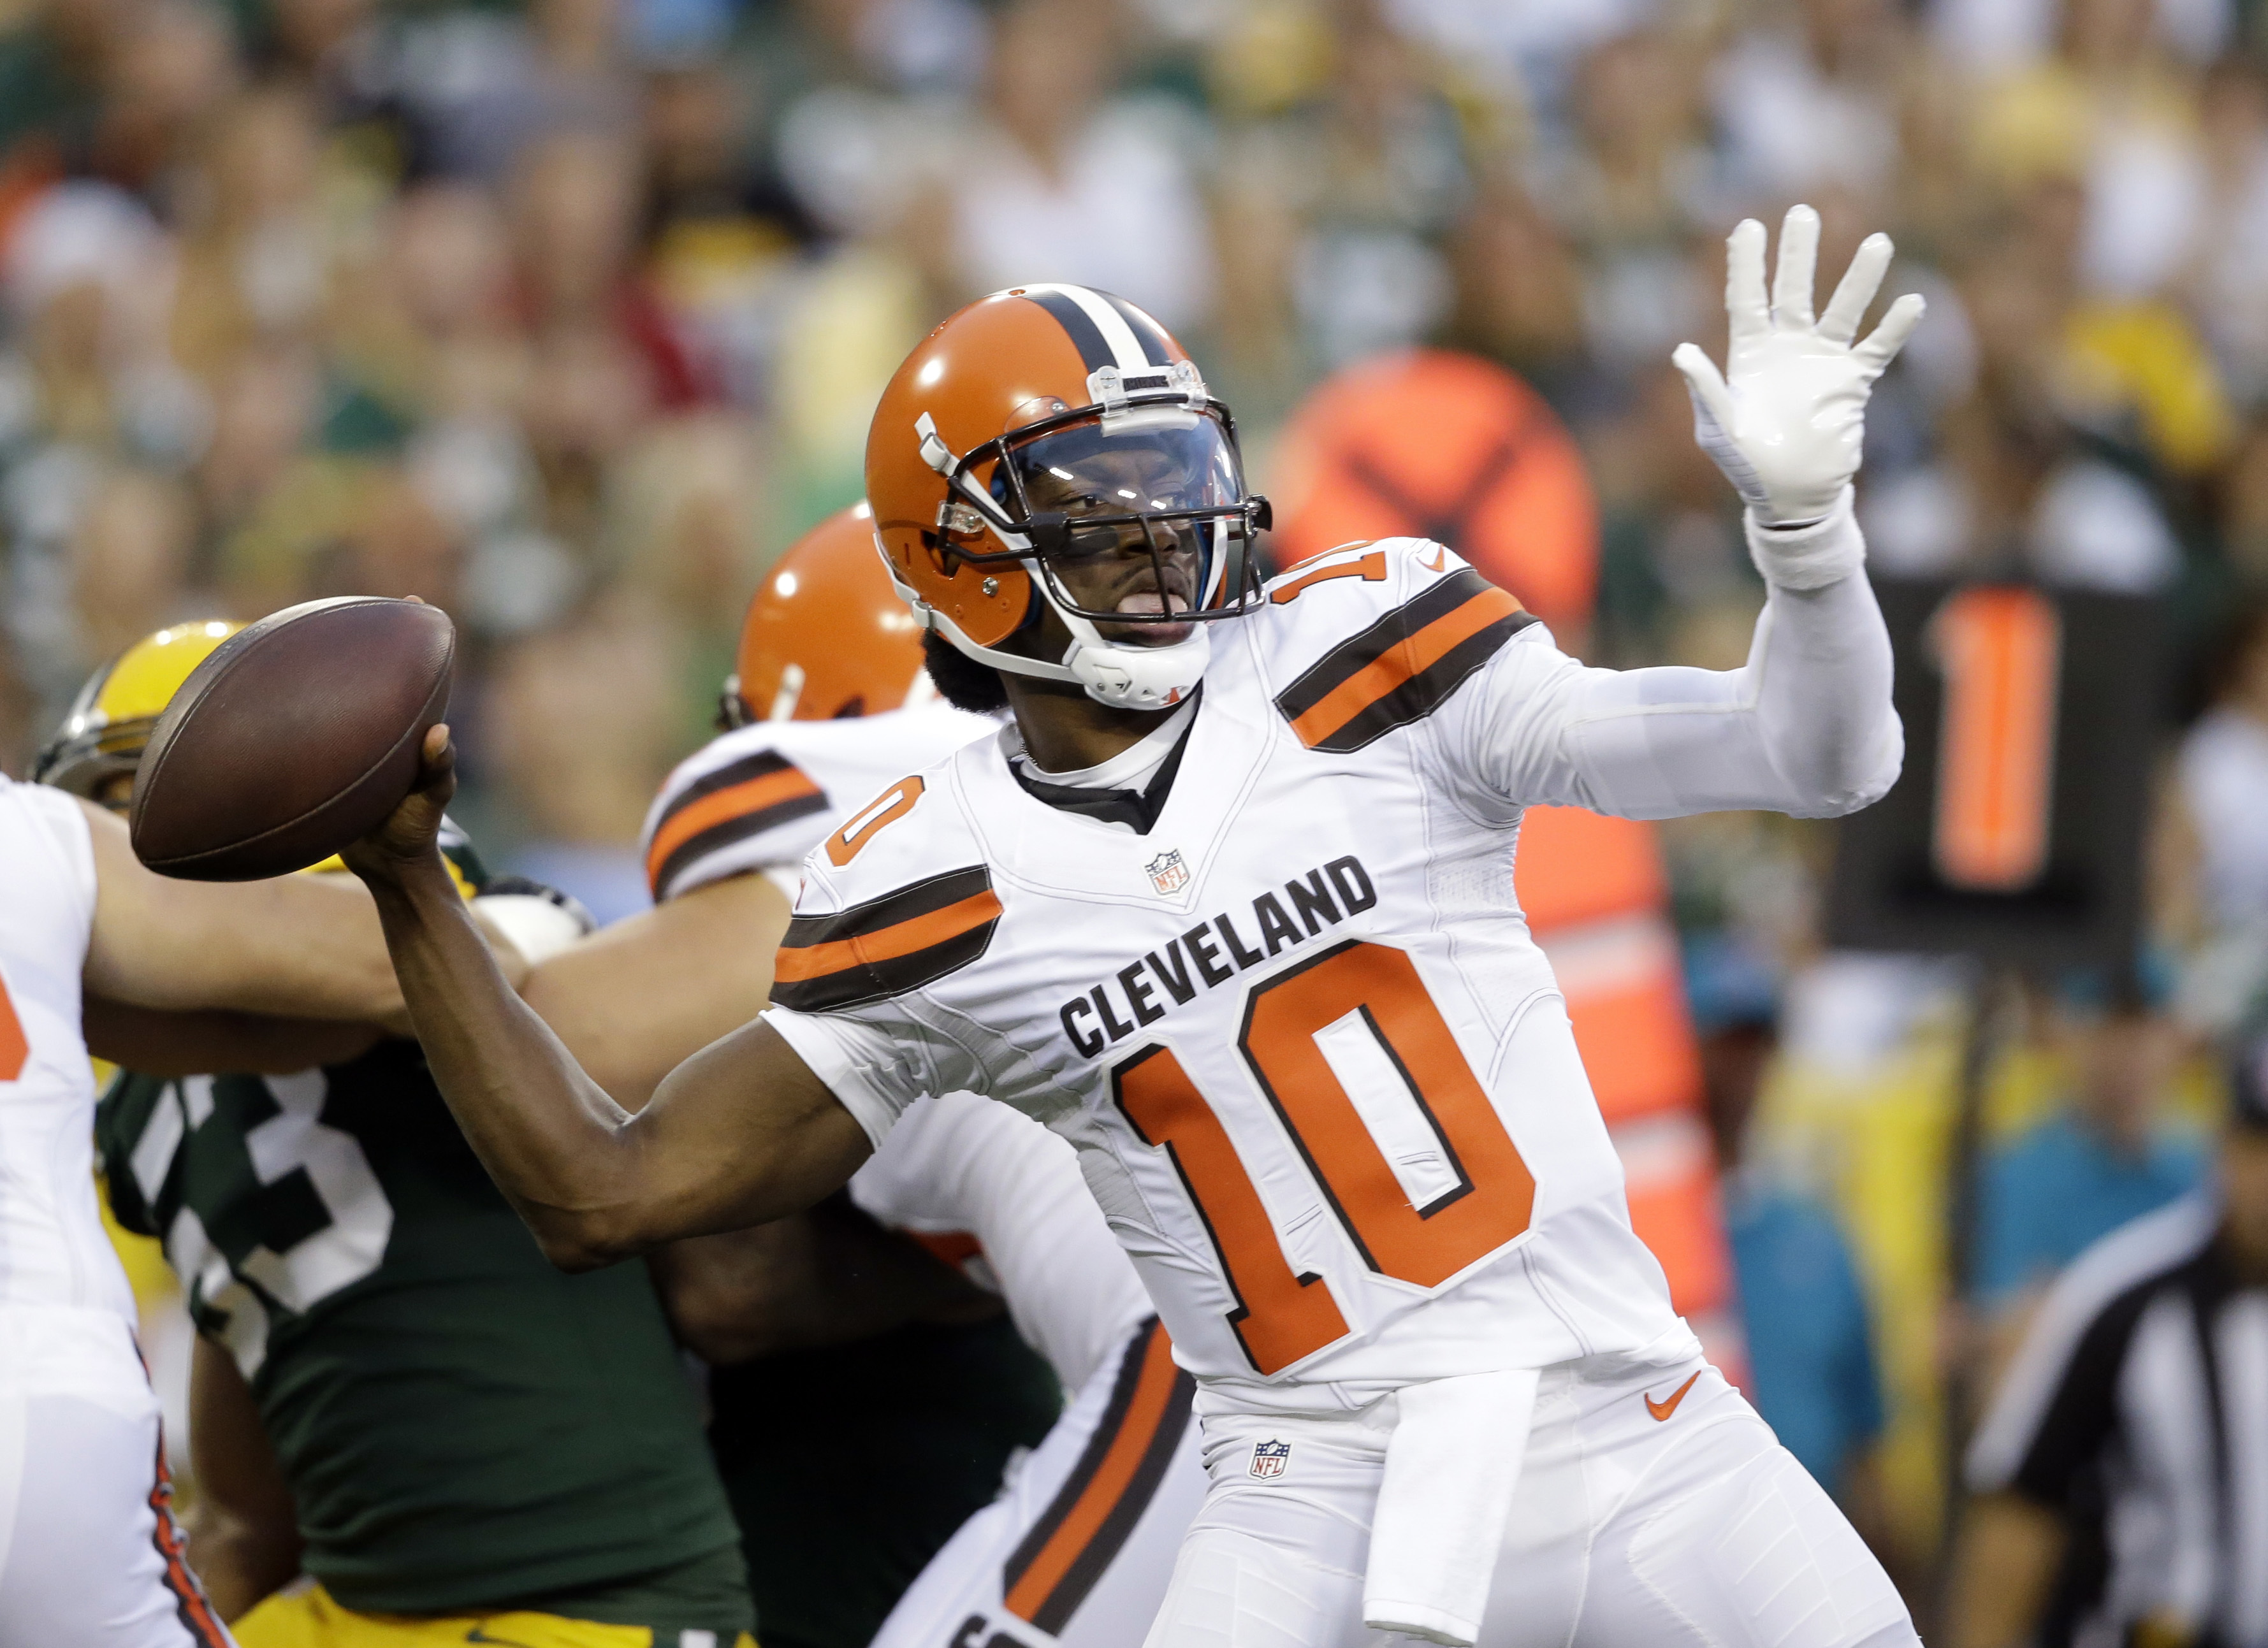 FILE - In this Aug. 12, 2016, file photo, Cleveland Browns quarterback Robert Griffin III (10) throws against the Green Bay Packers in the first half of an NFL preseason football game in Green Bay, Wis. Maybe no longer the dual threat he was as a rookie f